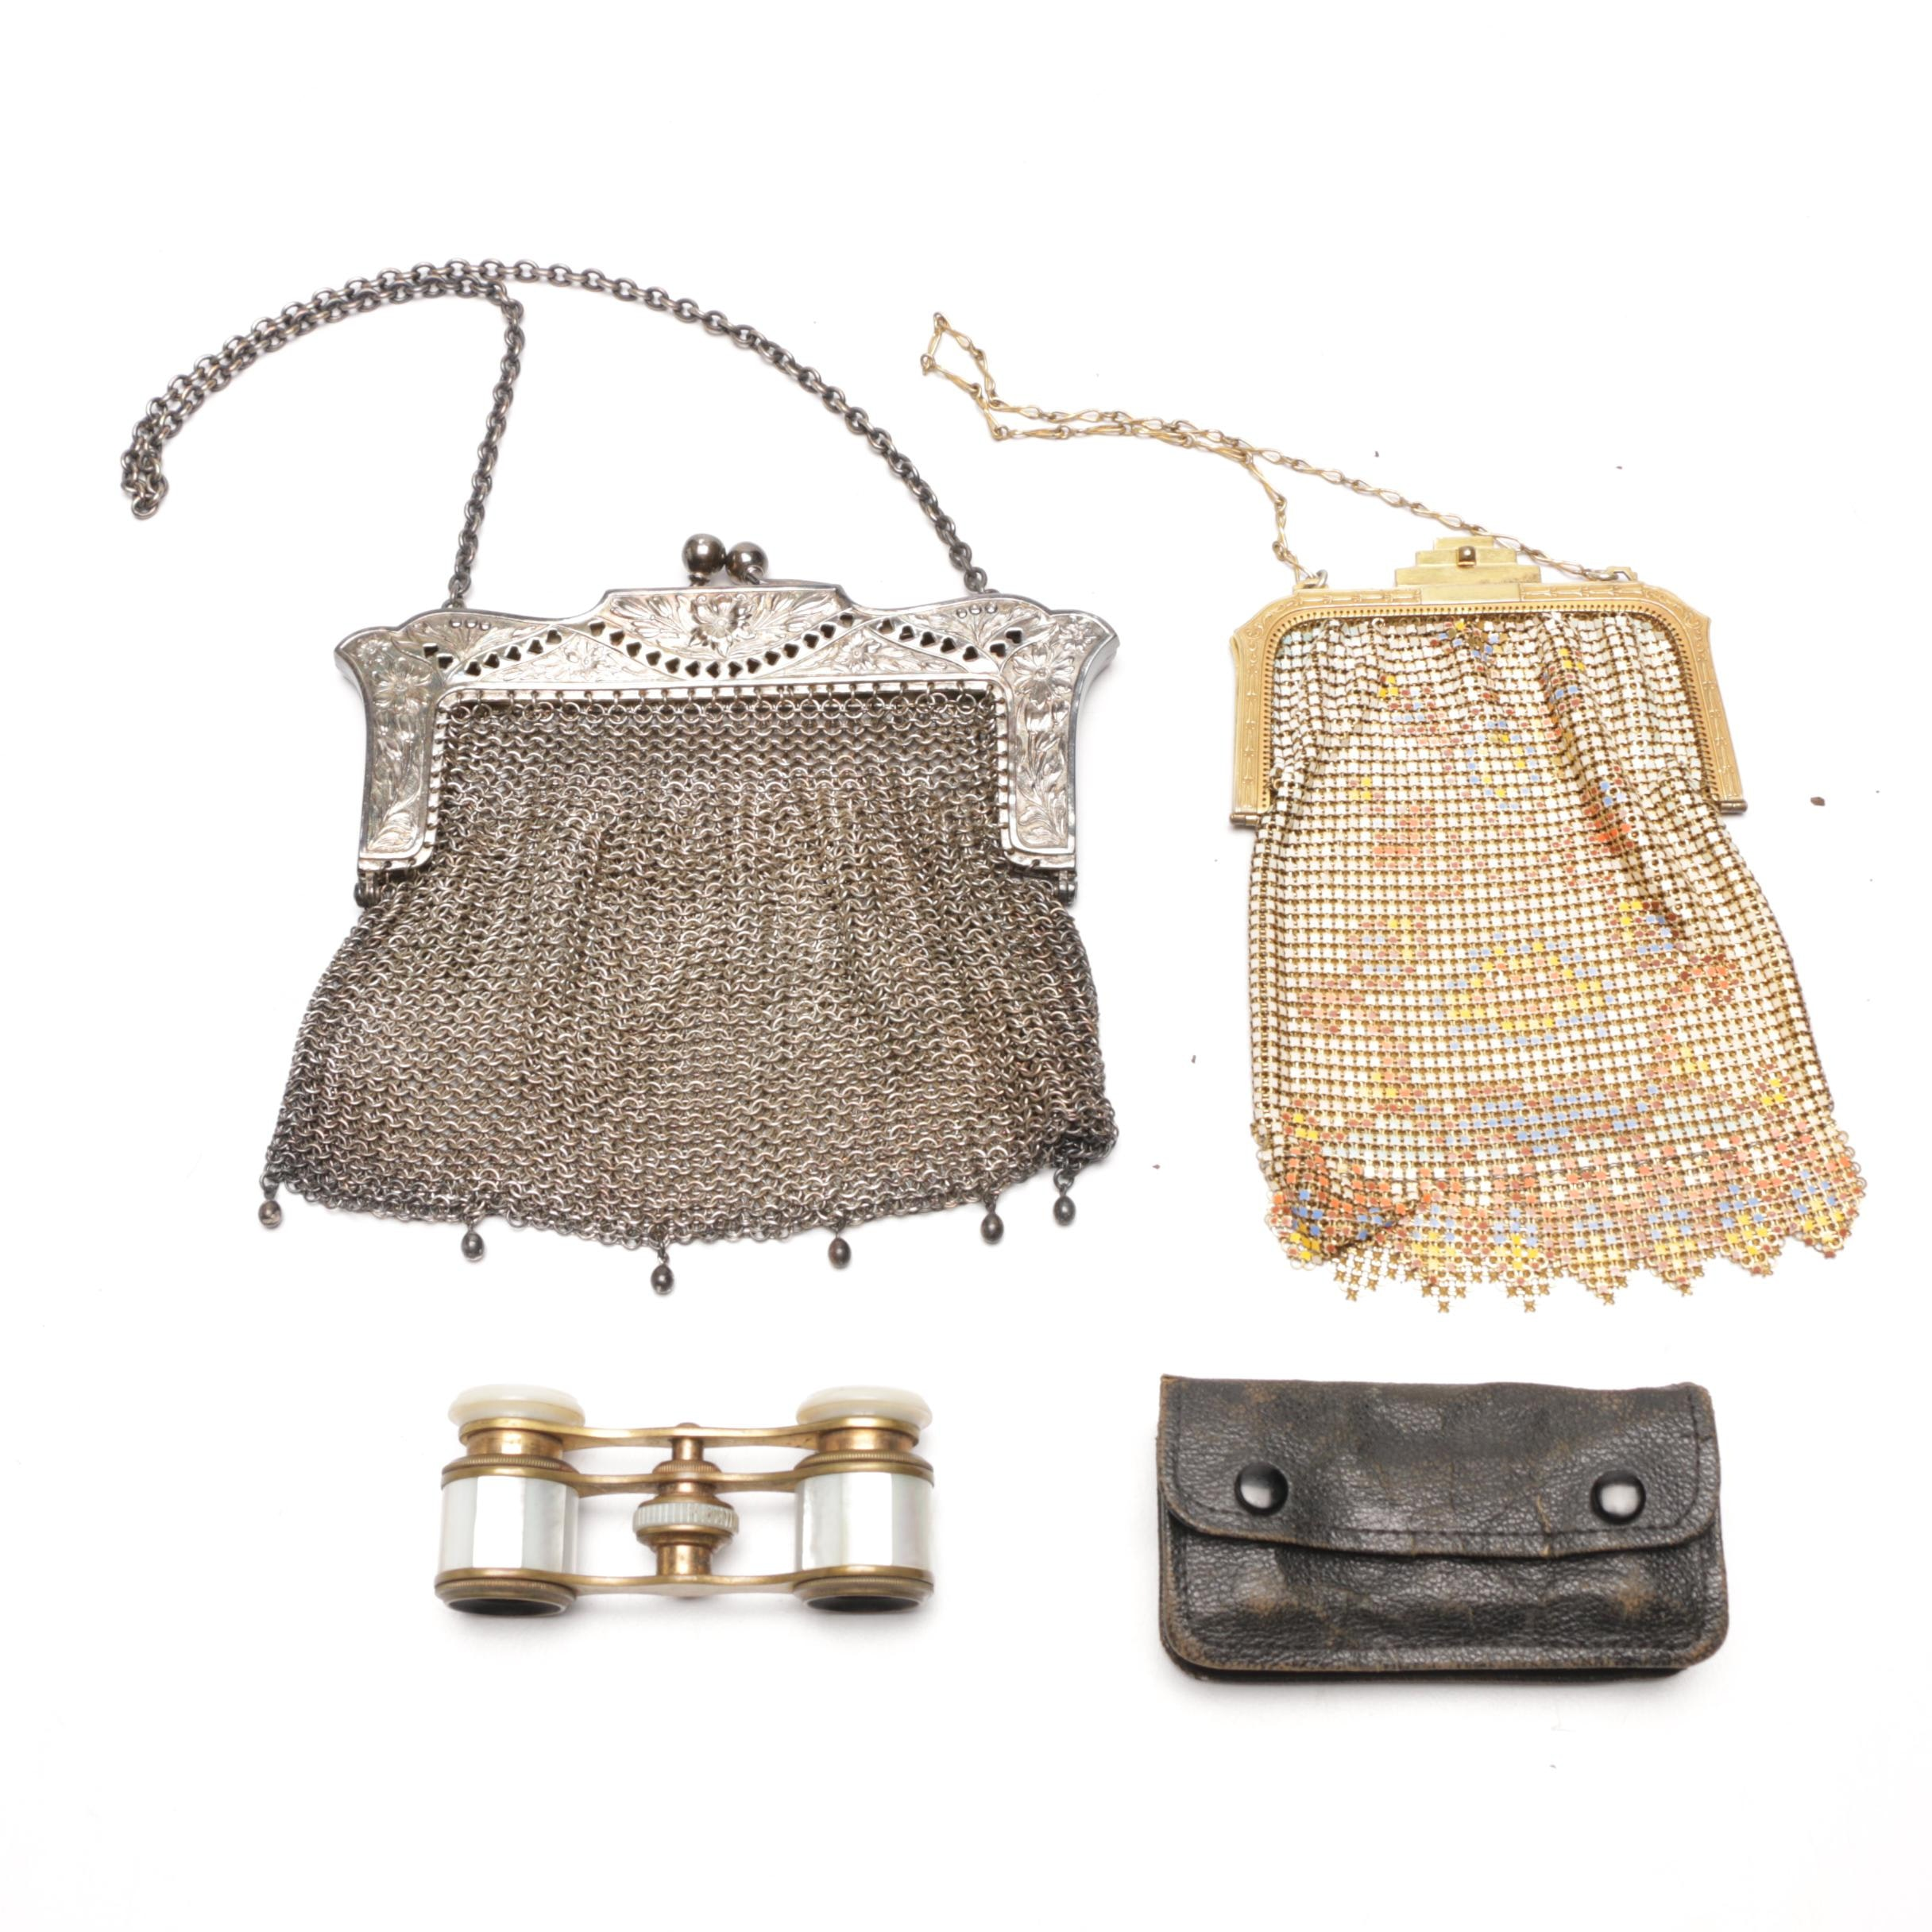 1920s Mesh Handbags Including Sterling, Whiting and Davis and Opera Glasses